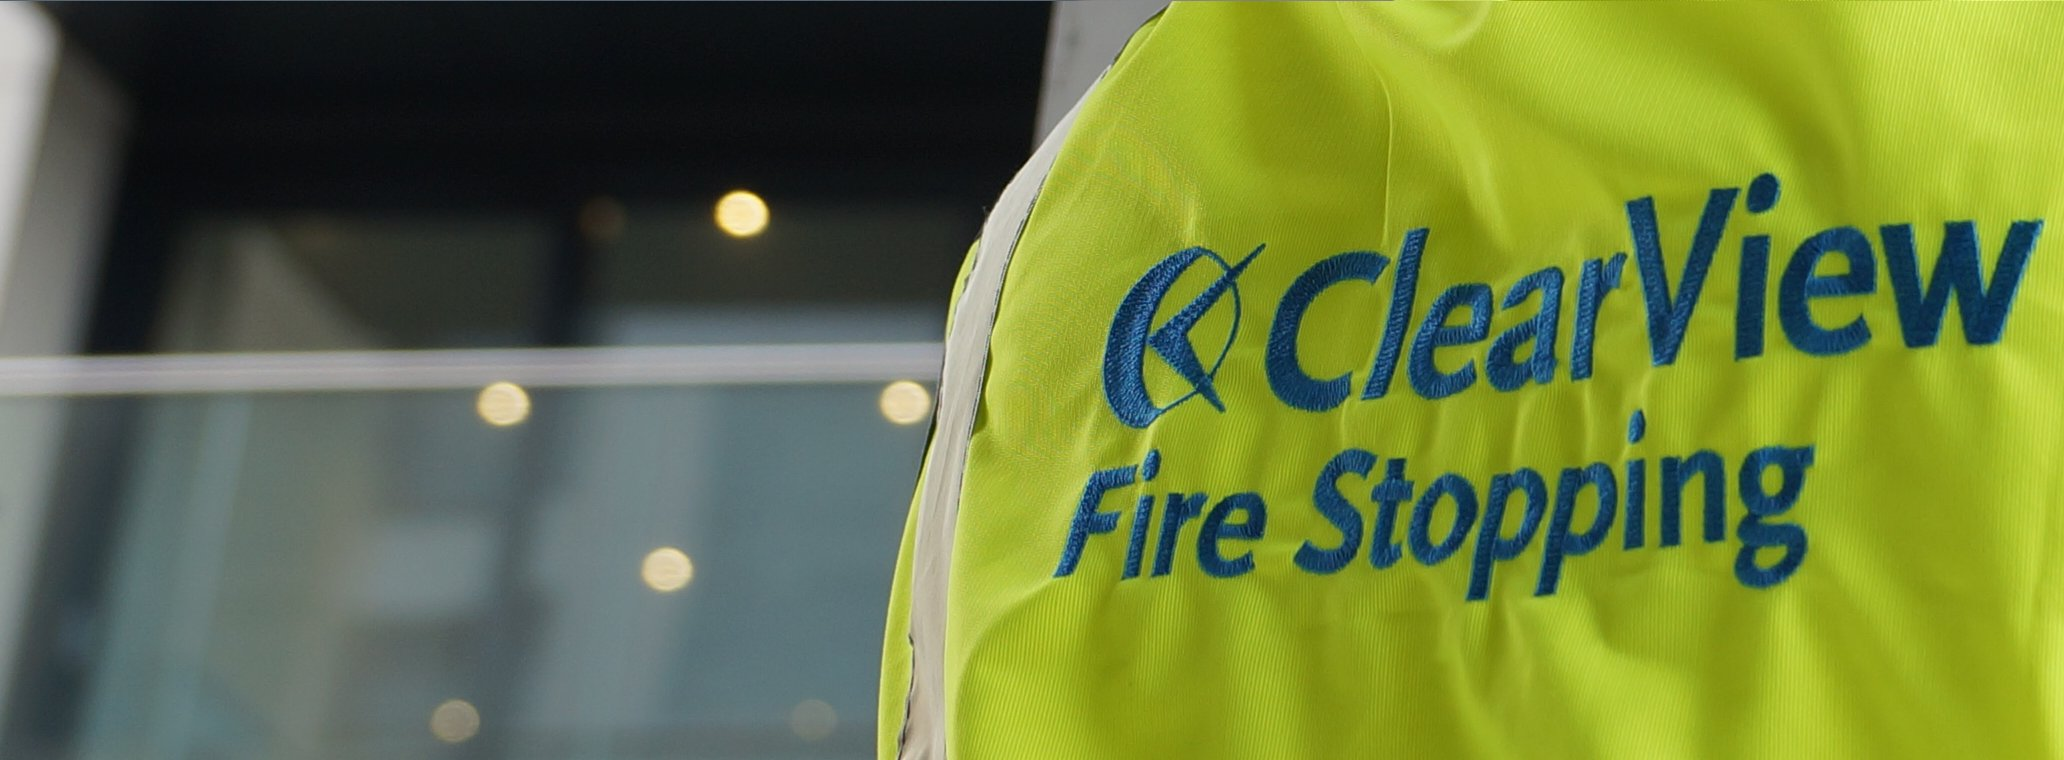 Quelfire Showcase Our Fire Stopping Case Study